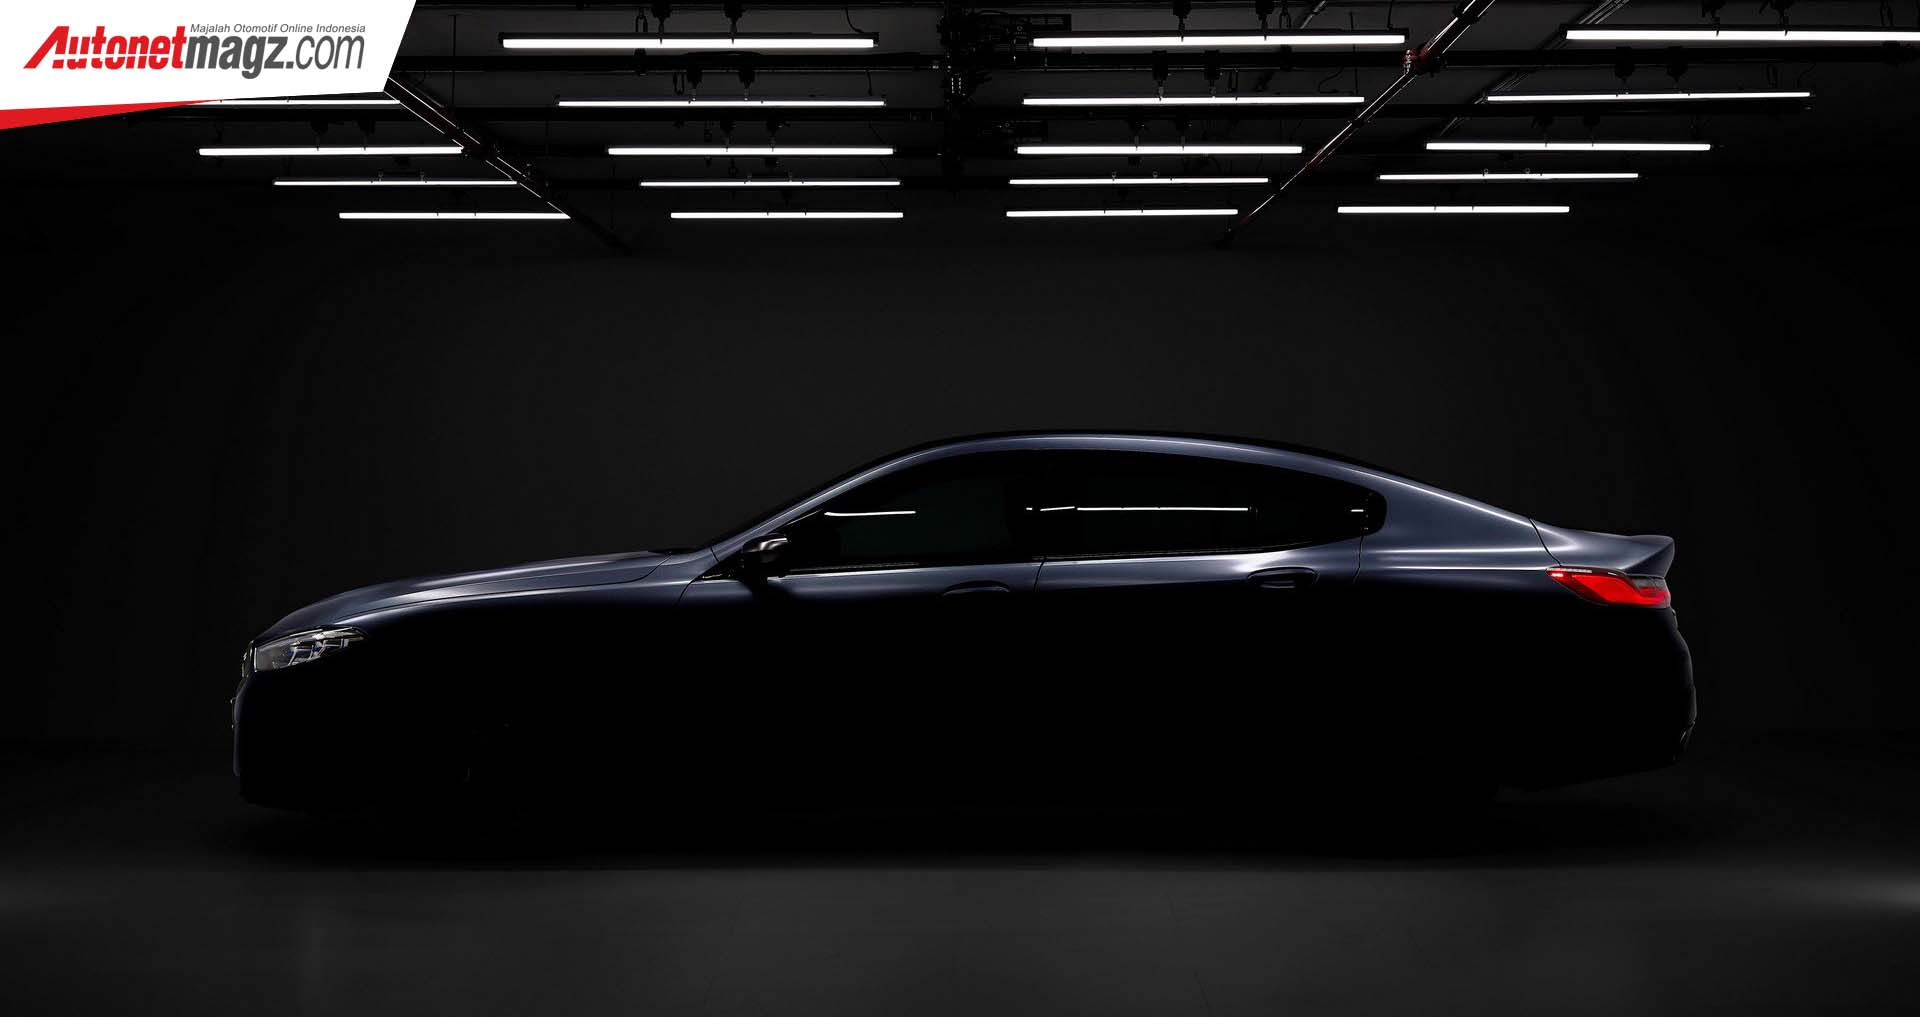 Berita, Teaser BMW 8 Series Grand Coupe: BMW Seri 8 Grand Coupe Akan Debut Bulan Depan!